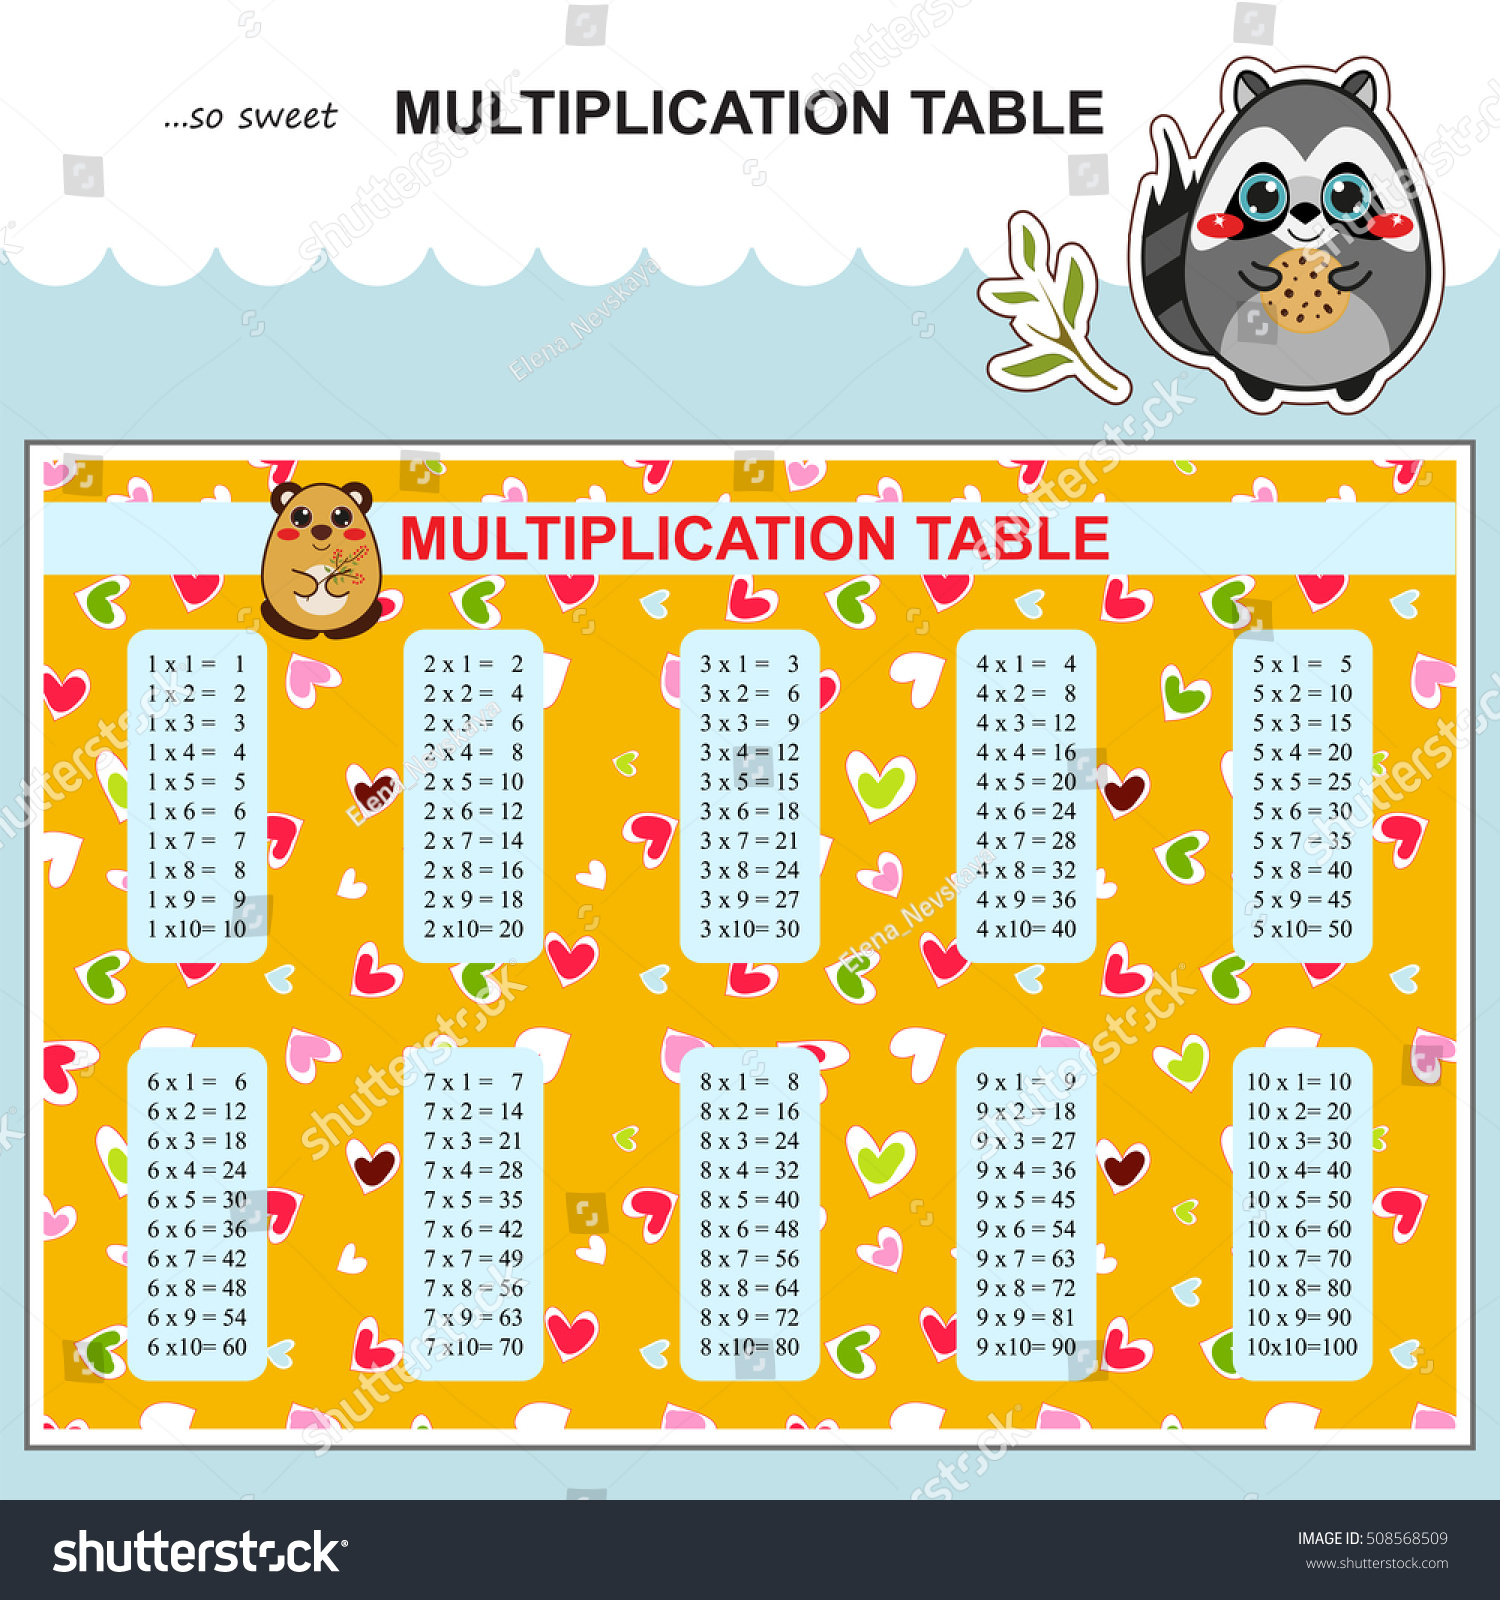 Vector multiplication table printable poster card stock vector vector multiplication table printable poster card with multiple tables kids design kawaii gamestrikefo Gallery